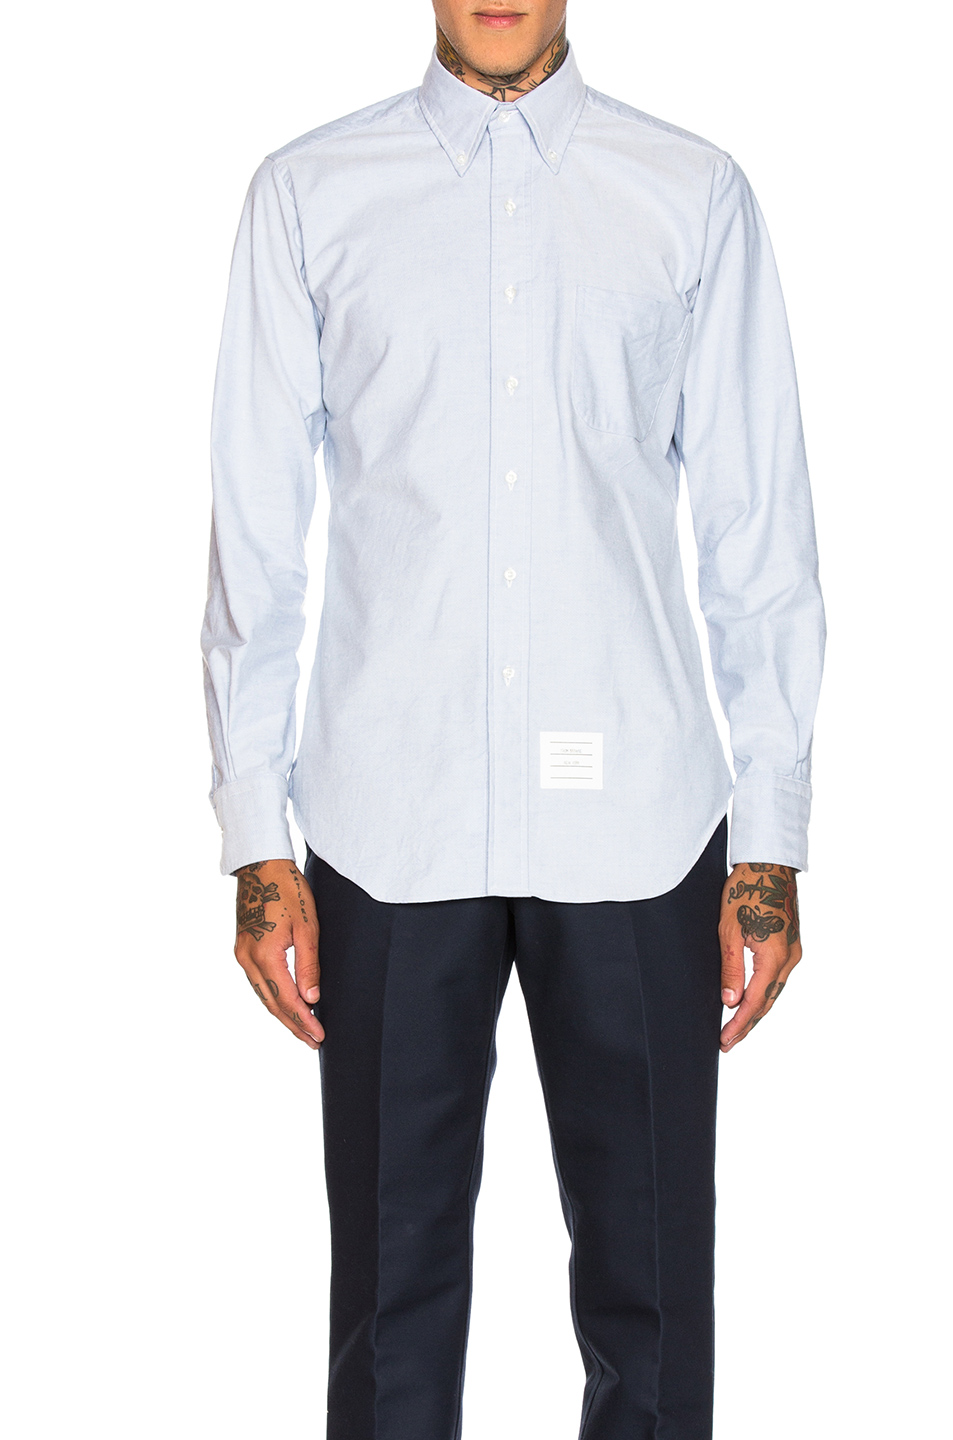 Thom Browne Classic Oxford Shirt in Blue